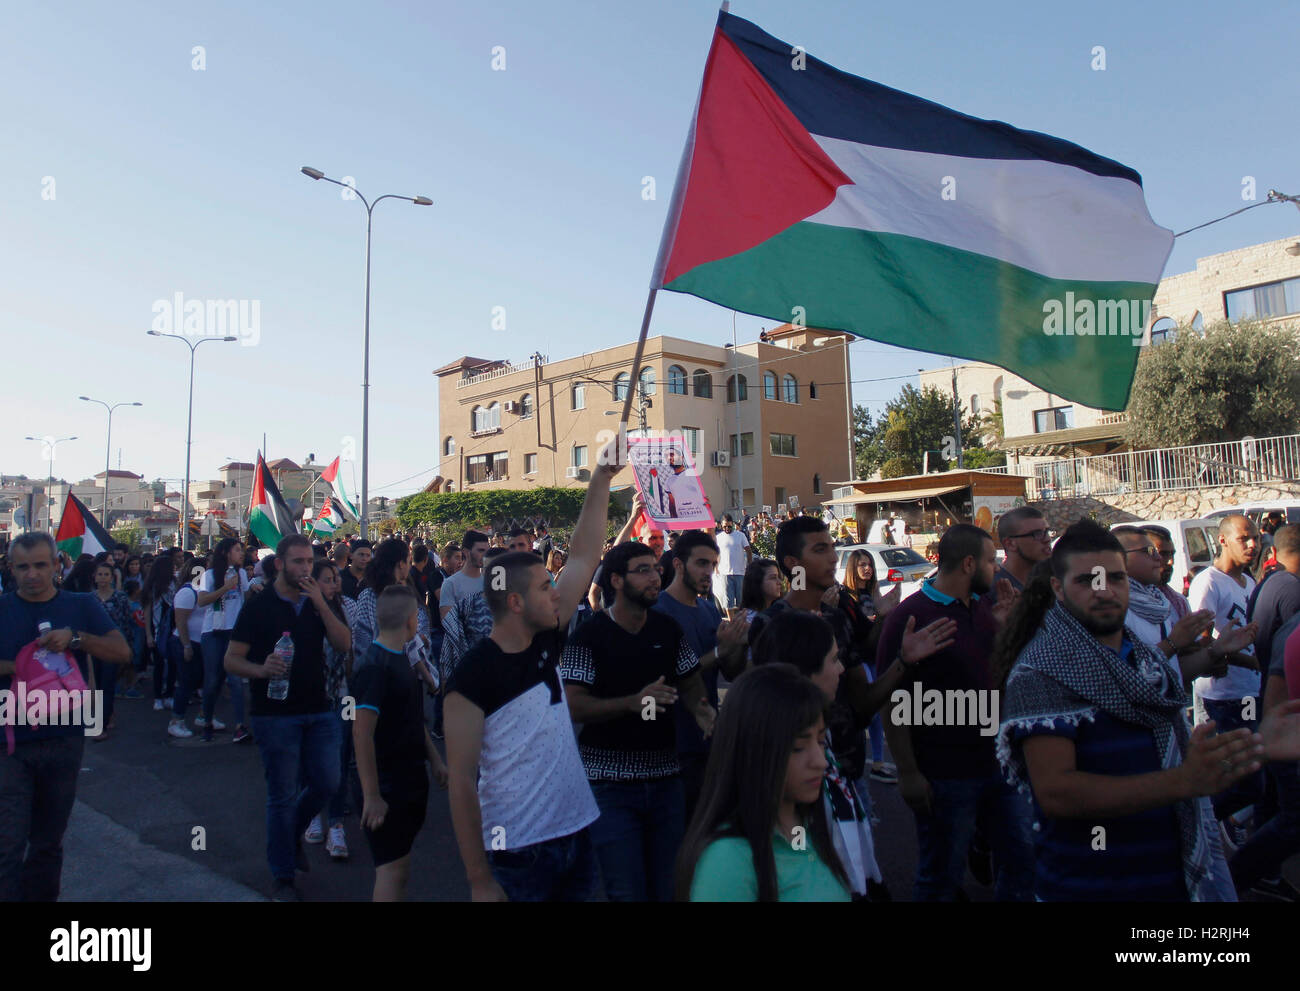 Jerusalem, Israel's northern town of Sakhnin. 1st Oct, 2016. Israeli Arabs wave Palestinian flags during a demonstration - Stock Image